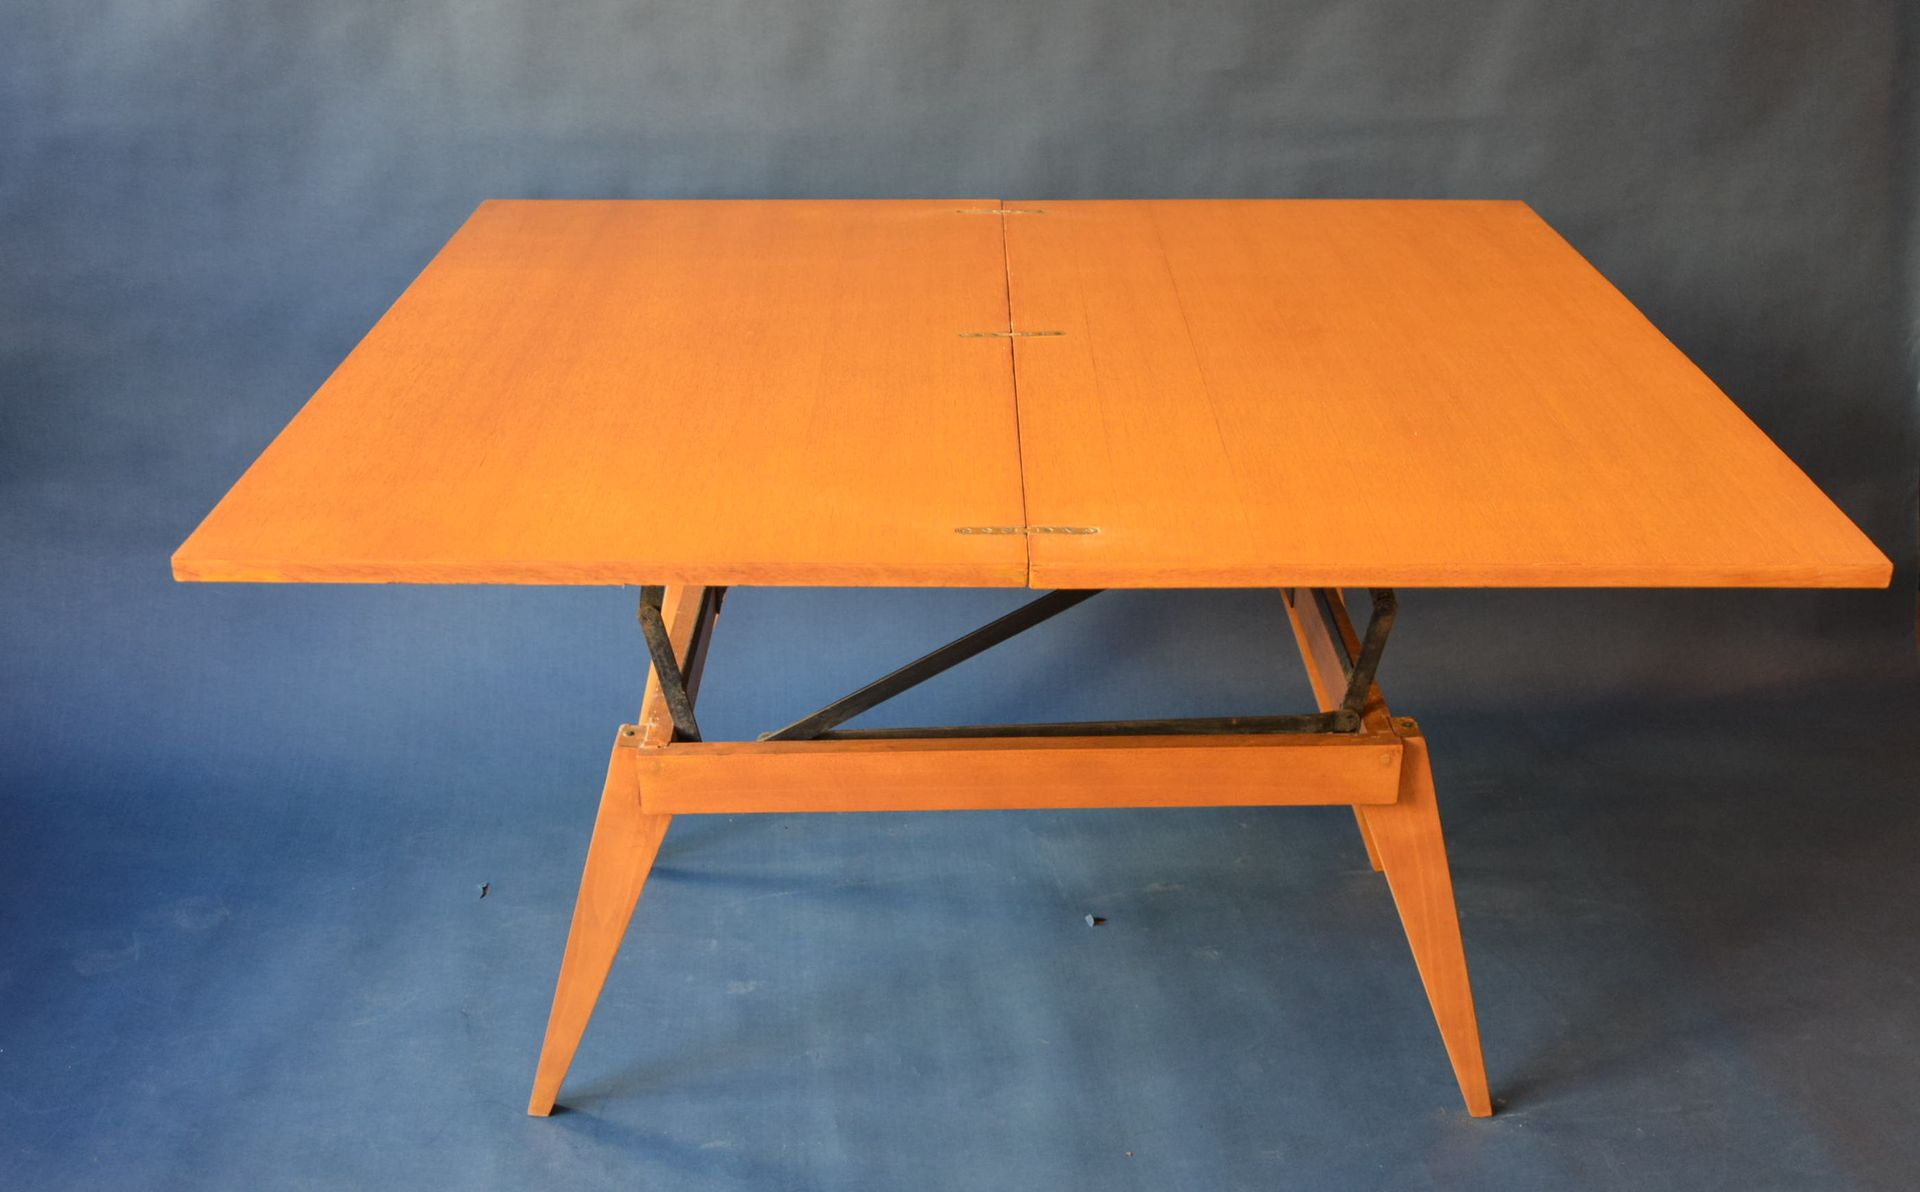 Vintage Model Magic Coffee Table by Albert Ducrot for sale at Pamono